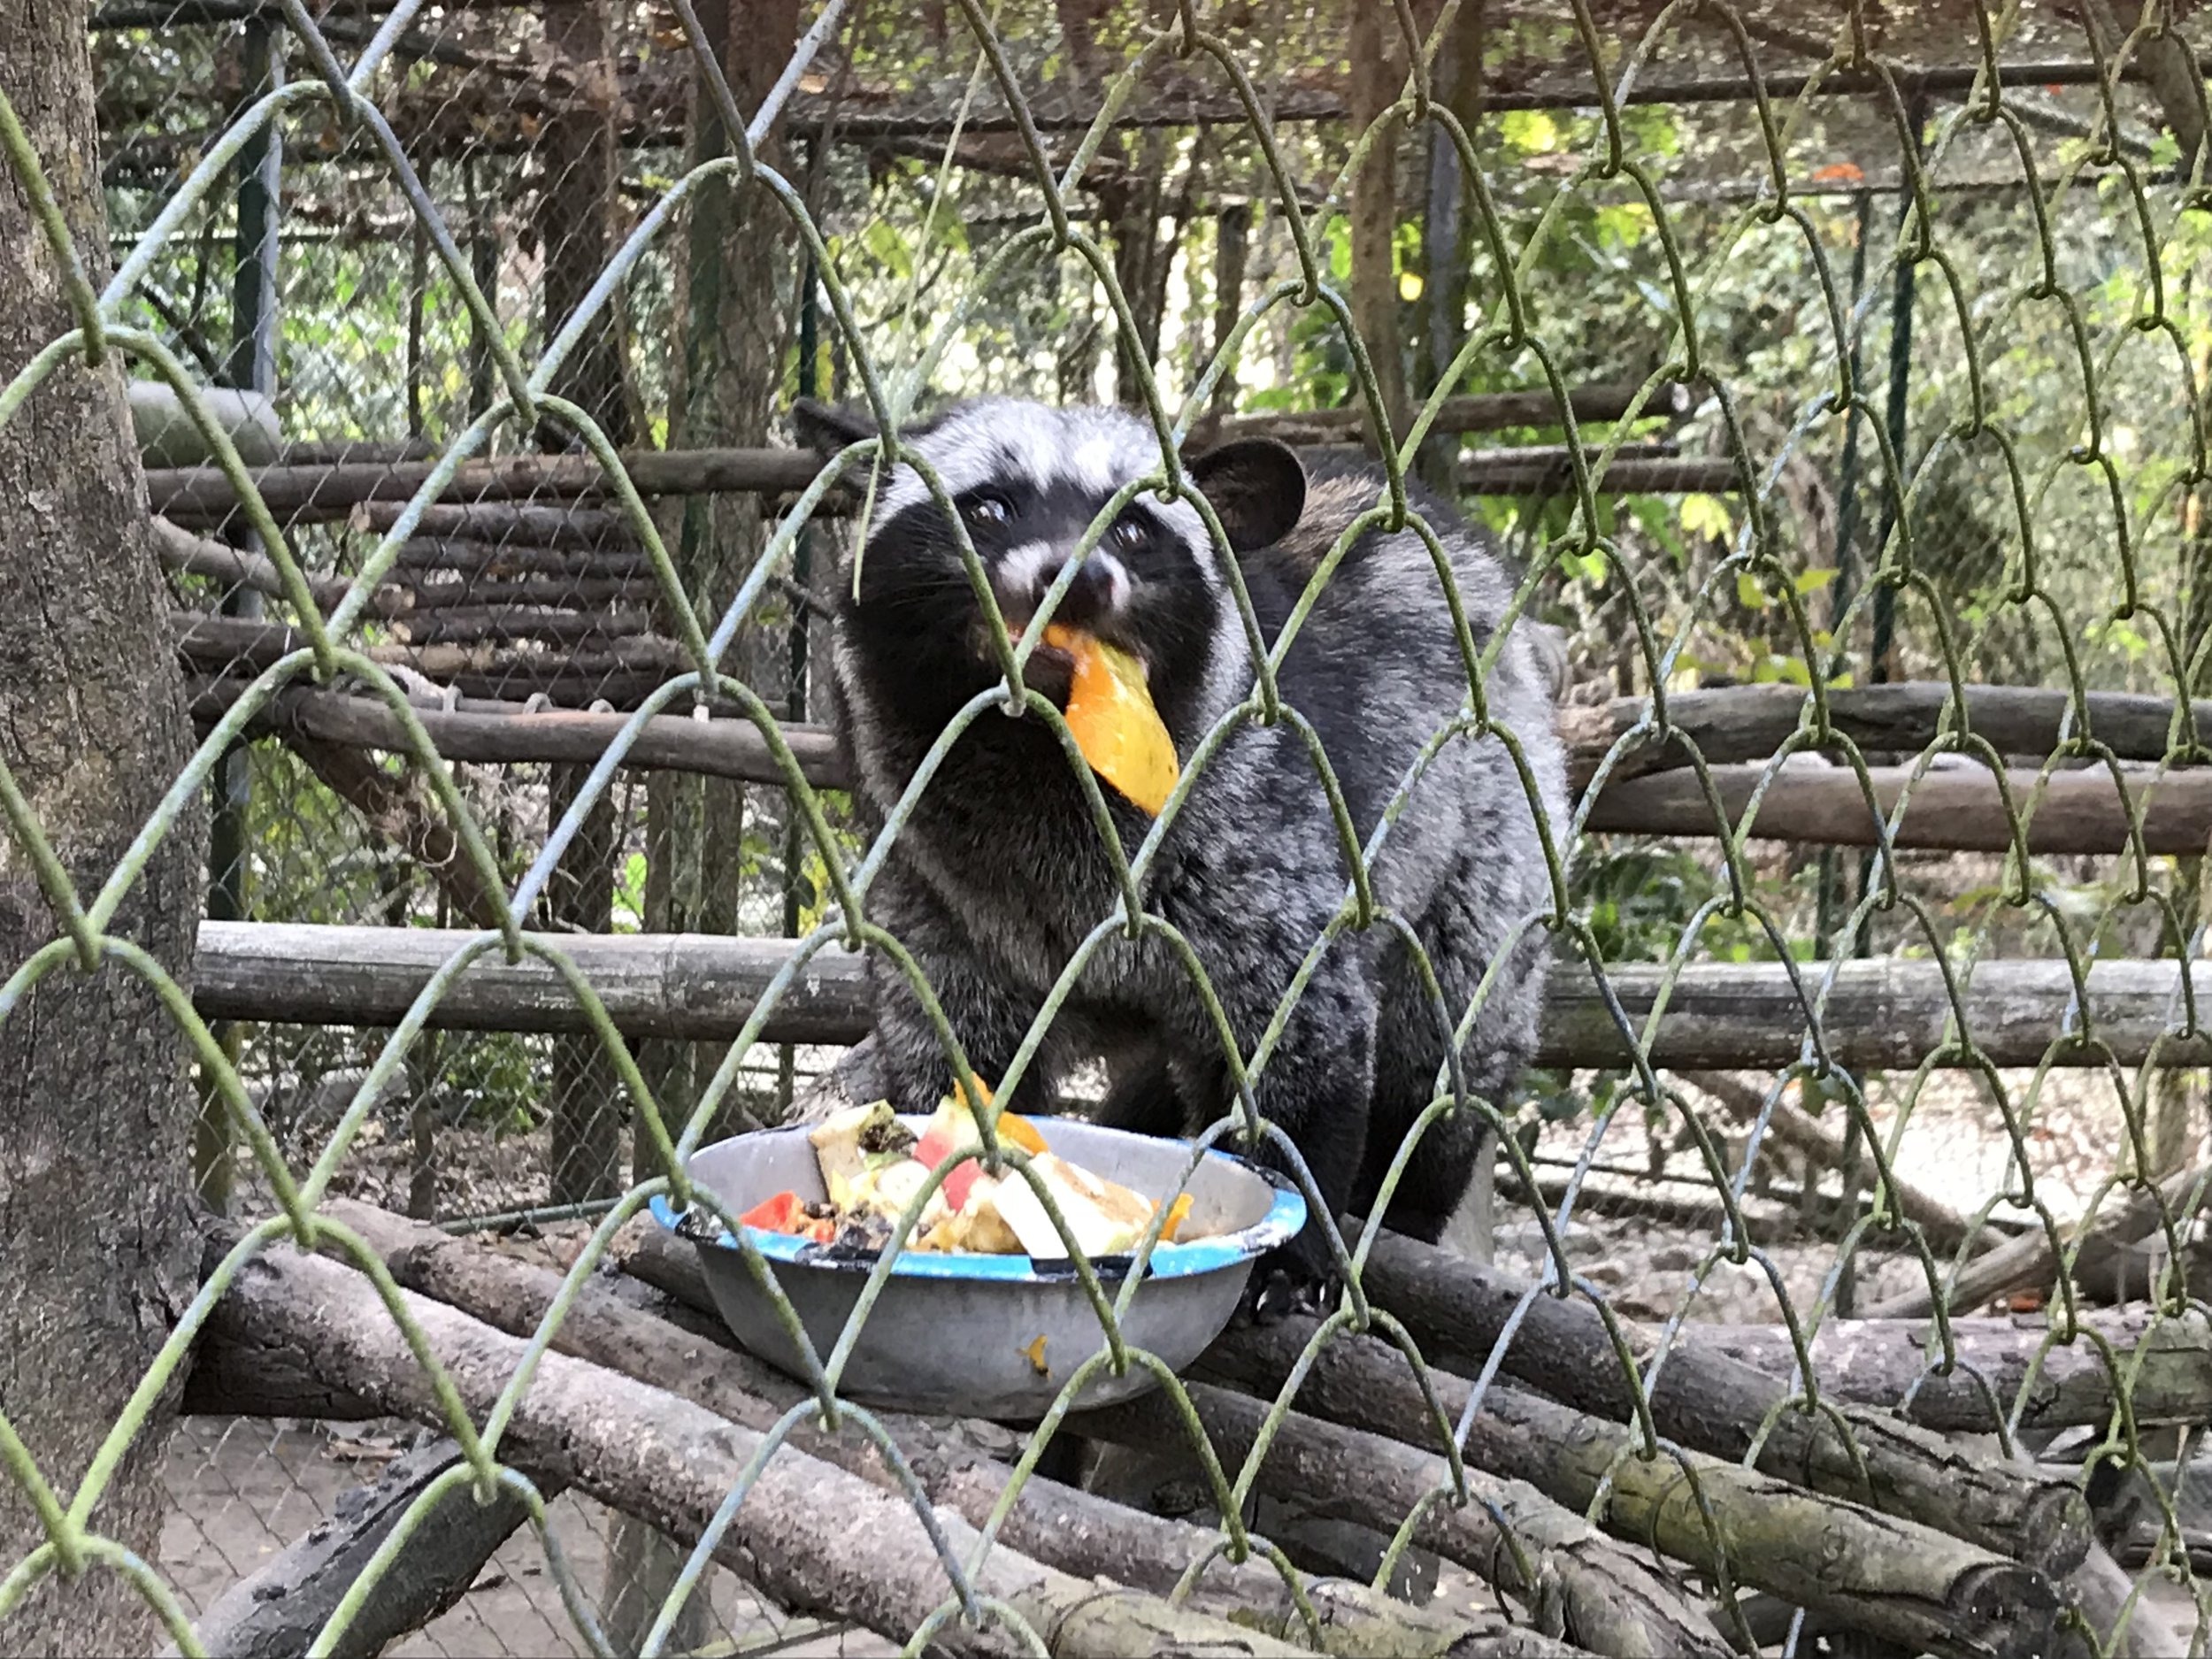 Chow time for the civet